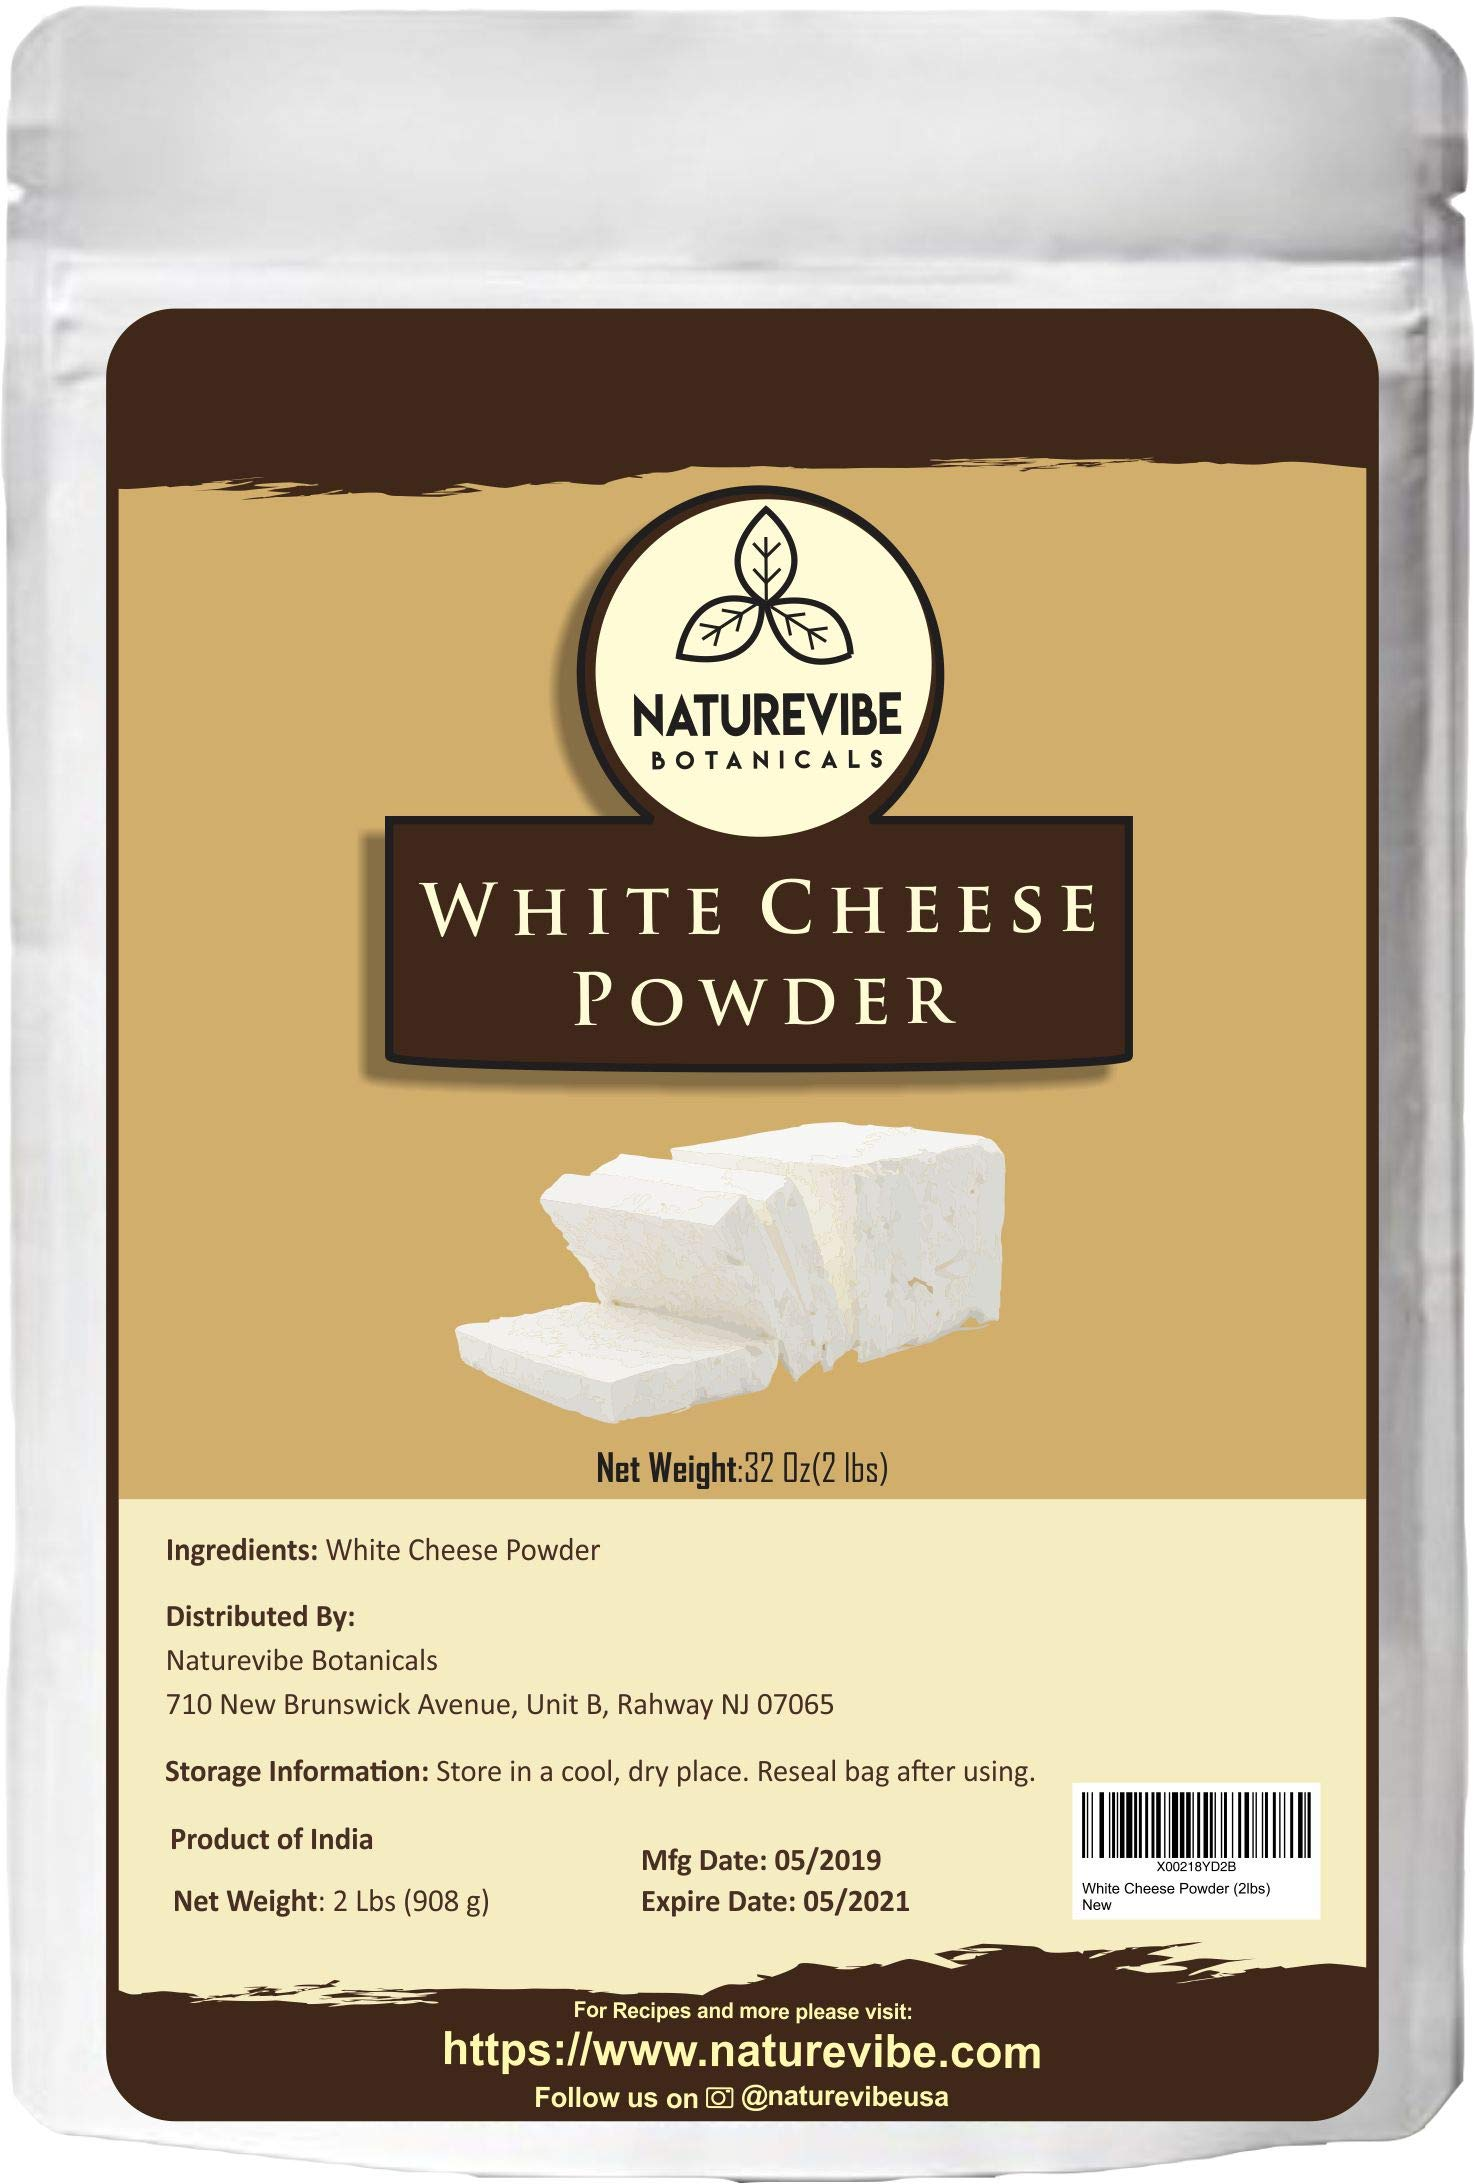 Naturevibe Botanicals White Cheese Powder (2lbs), | Gluten-Free and Non-GMO | Adds Taste and Flavor